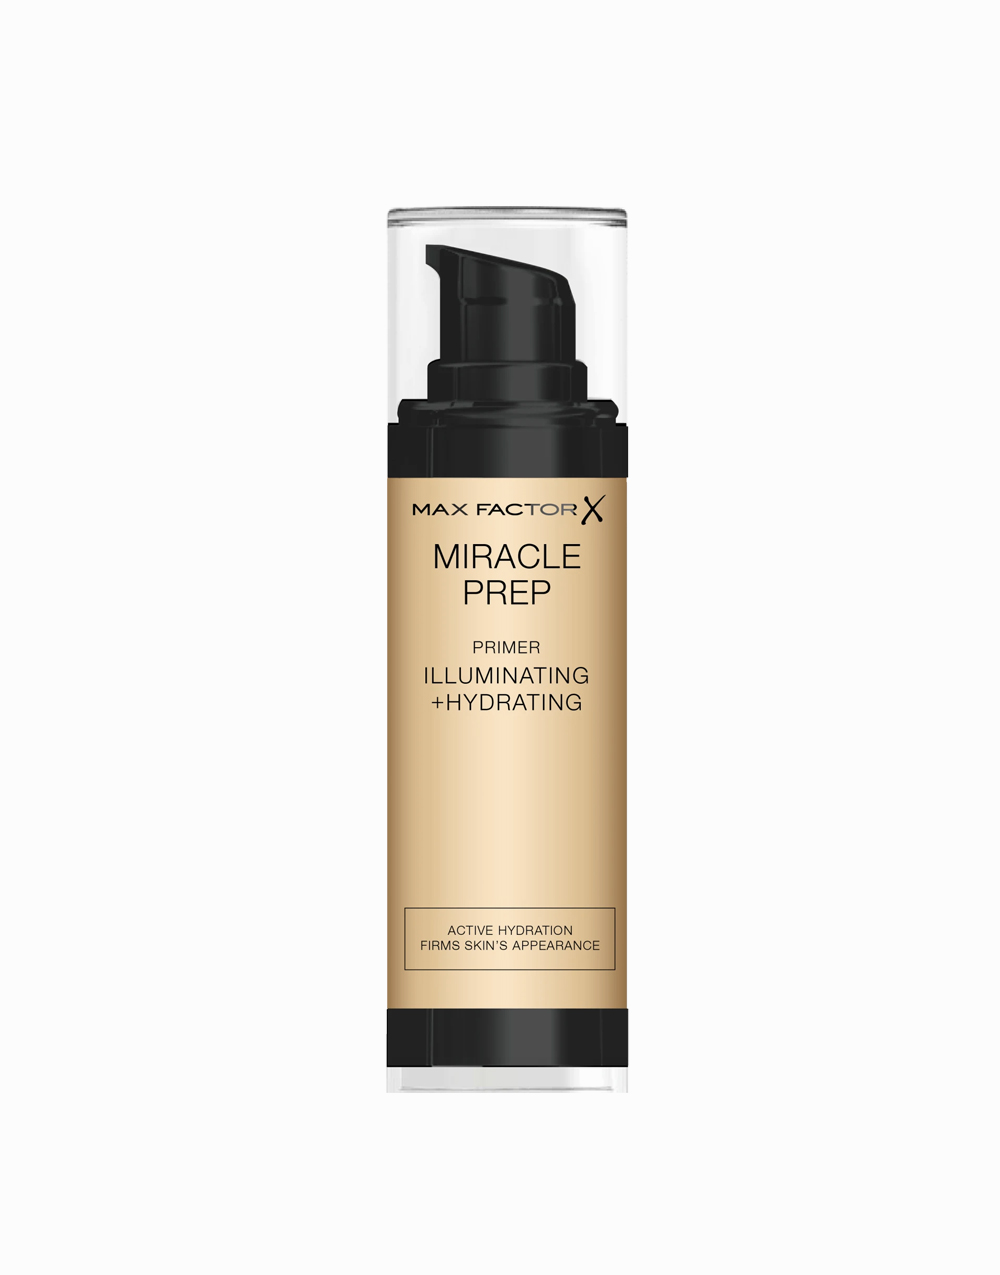 Miracle Prep Illuminating and Hydrating Primer by Max Factor